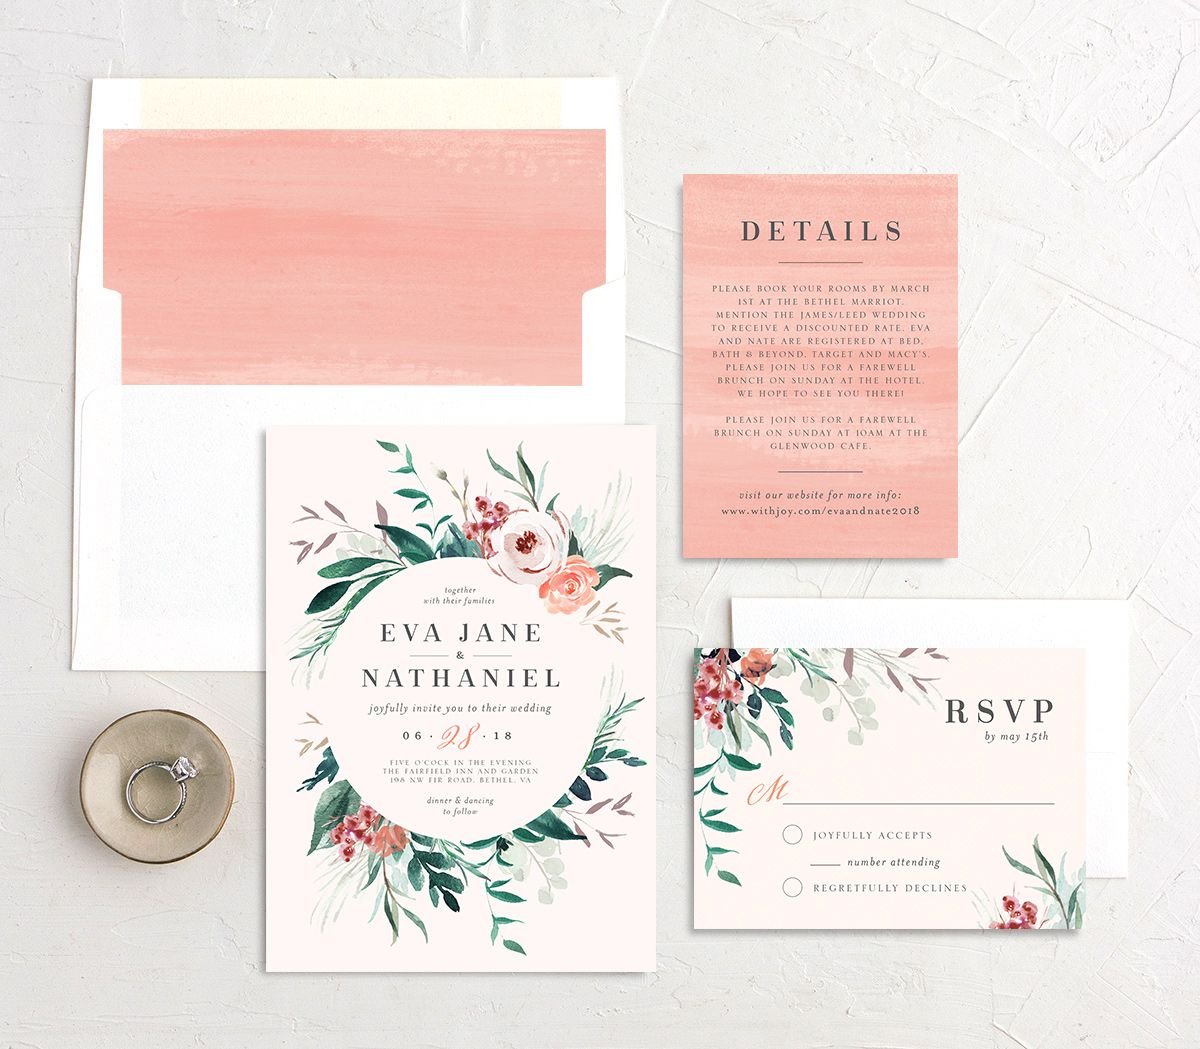 Wild wreath wedding invitation stationery suite in pink